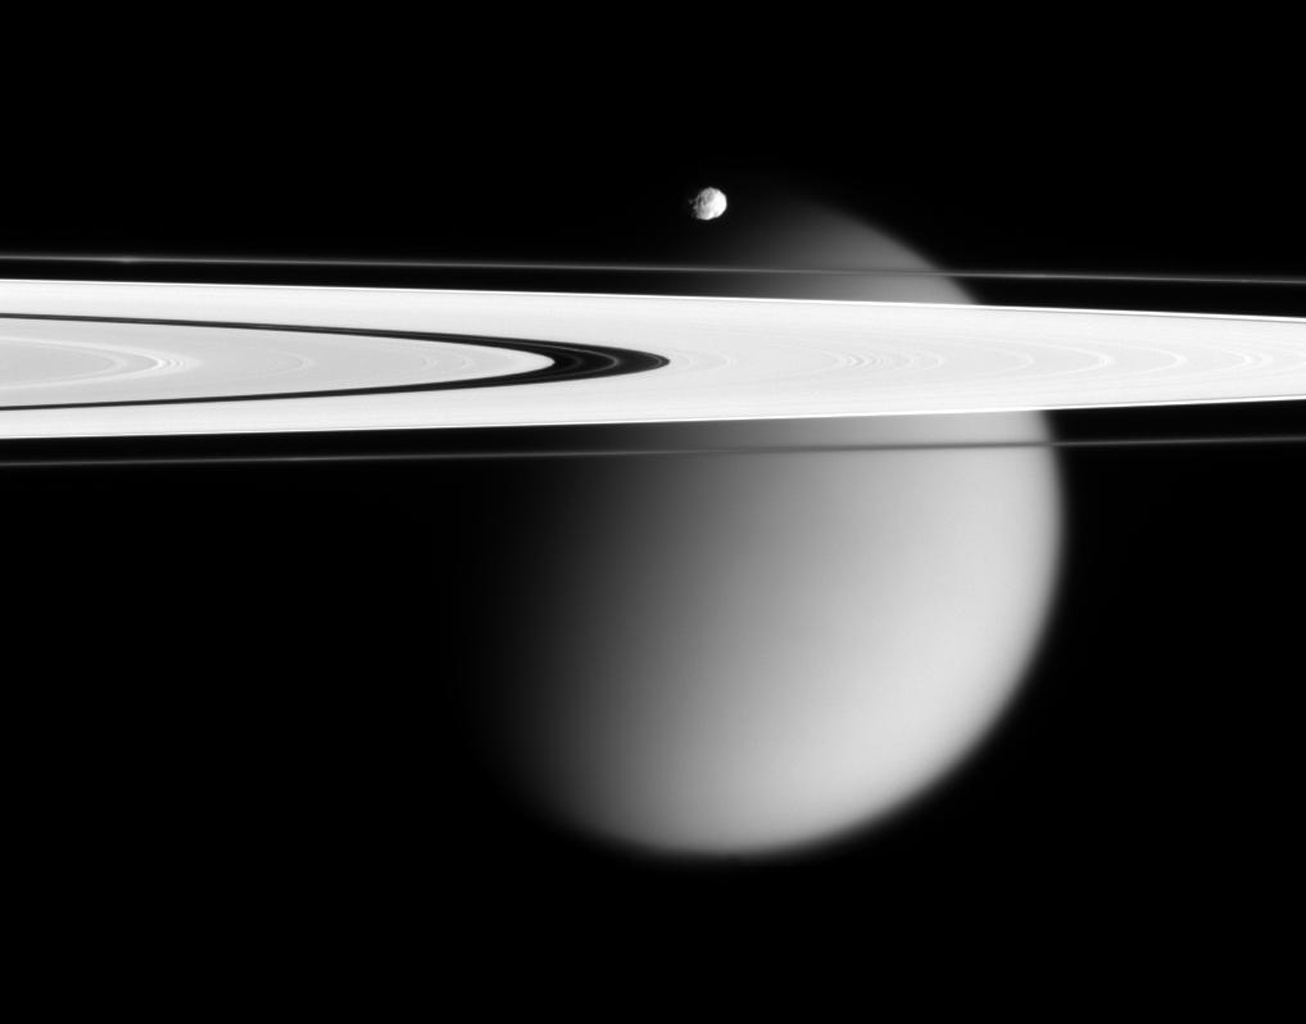 NASA's Cassini spacecraft delivers this stunning vista showing small, battered Epimetheus and smog-enshrouded Titan, with Saturn's A and F rings stretching across the scene.